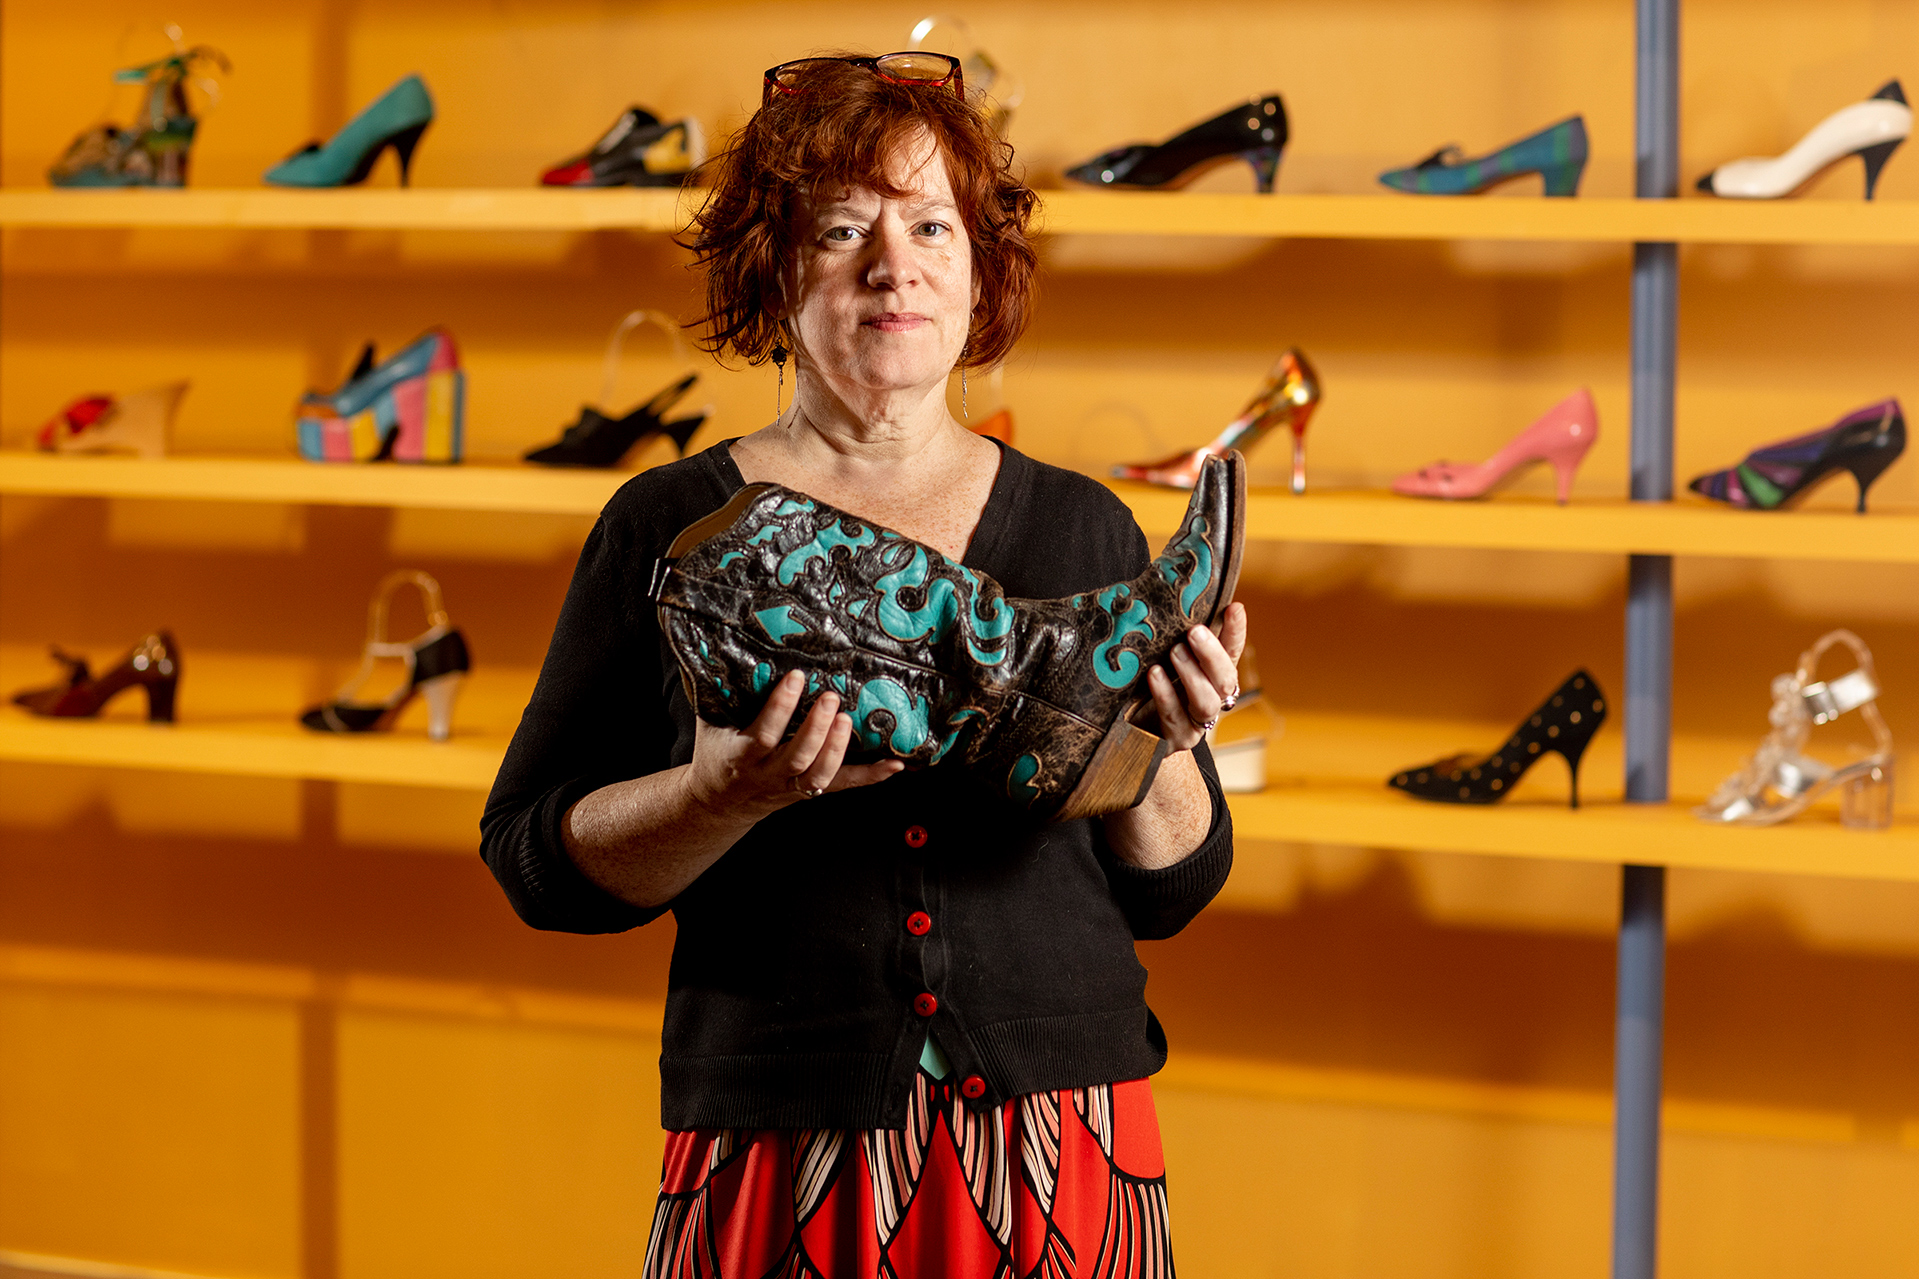 "Associate Professor of Theater Christine McDowell's has curated Museum L-A 's shoe exhibition.Museum L-A's gallery is filled to the brim with shoes for its newest exhibit ""Footwear: From Function to Fashion."" The exhibit explores the whimsy and artfulness that shoe designs have played with for decades to acknowledge that shoes, while primarily used as an often-forgotten functional item, can be masterpieces in their own right. A certain focus is placed on the extensive history of the shoe industry in Auburn, once the fifth largest producer of footwear in the country, through a timeline representing the ebb and flow of the local companies historically making shoes in our community. This exhibit is Museum L-A's next step in the progression of telling this industry's story – this time focusing on the product that was being created by the millions right in our little corner of Maine while also creating an opportunity to celebrate the 150th Anniversary of the City of Auburn, 1869-2019."